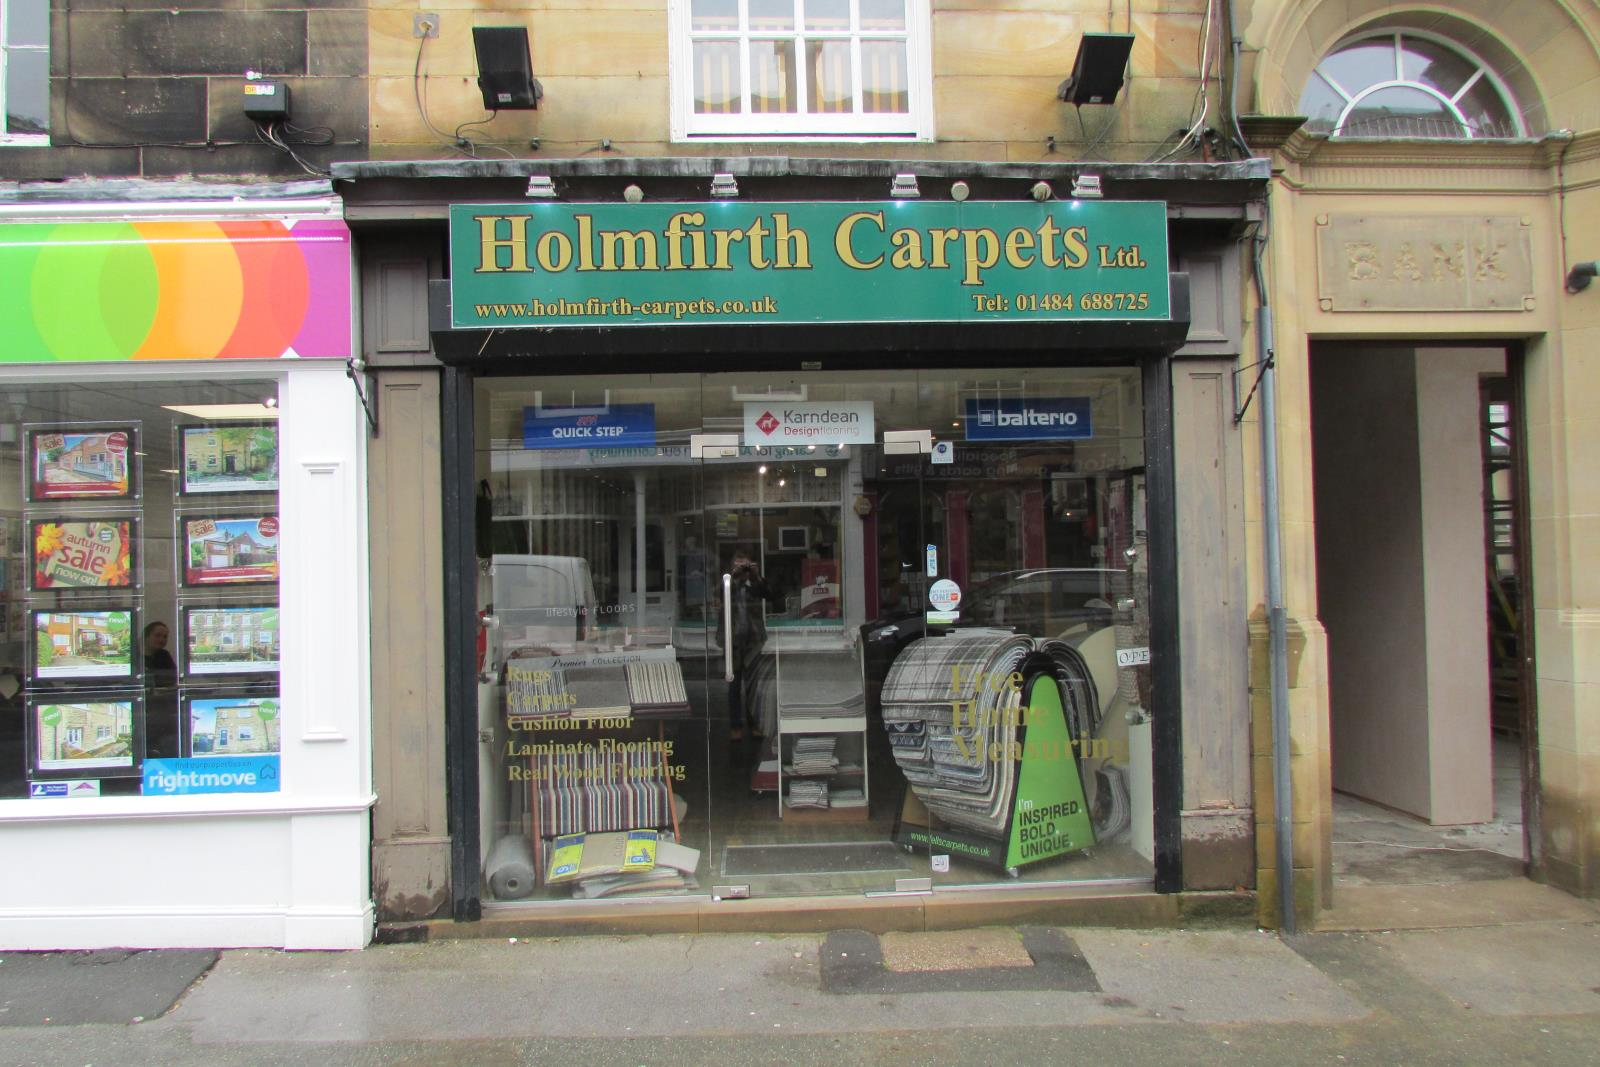 32 Victoria Street, Holmfirth, West Yorkshire HD9 7DE